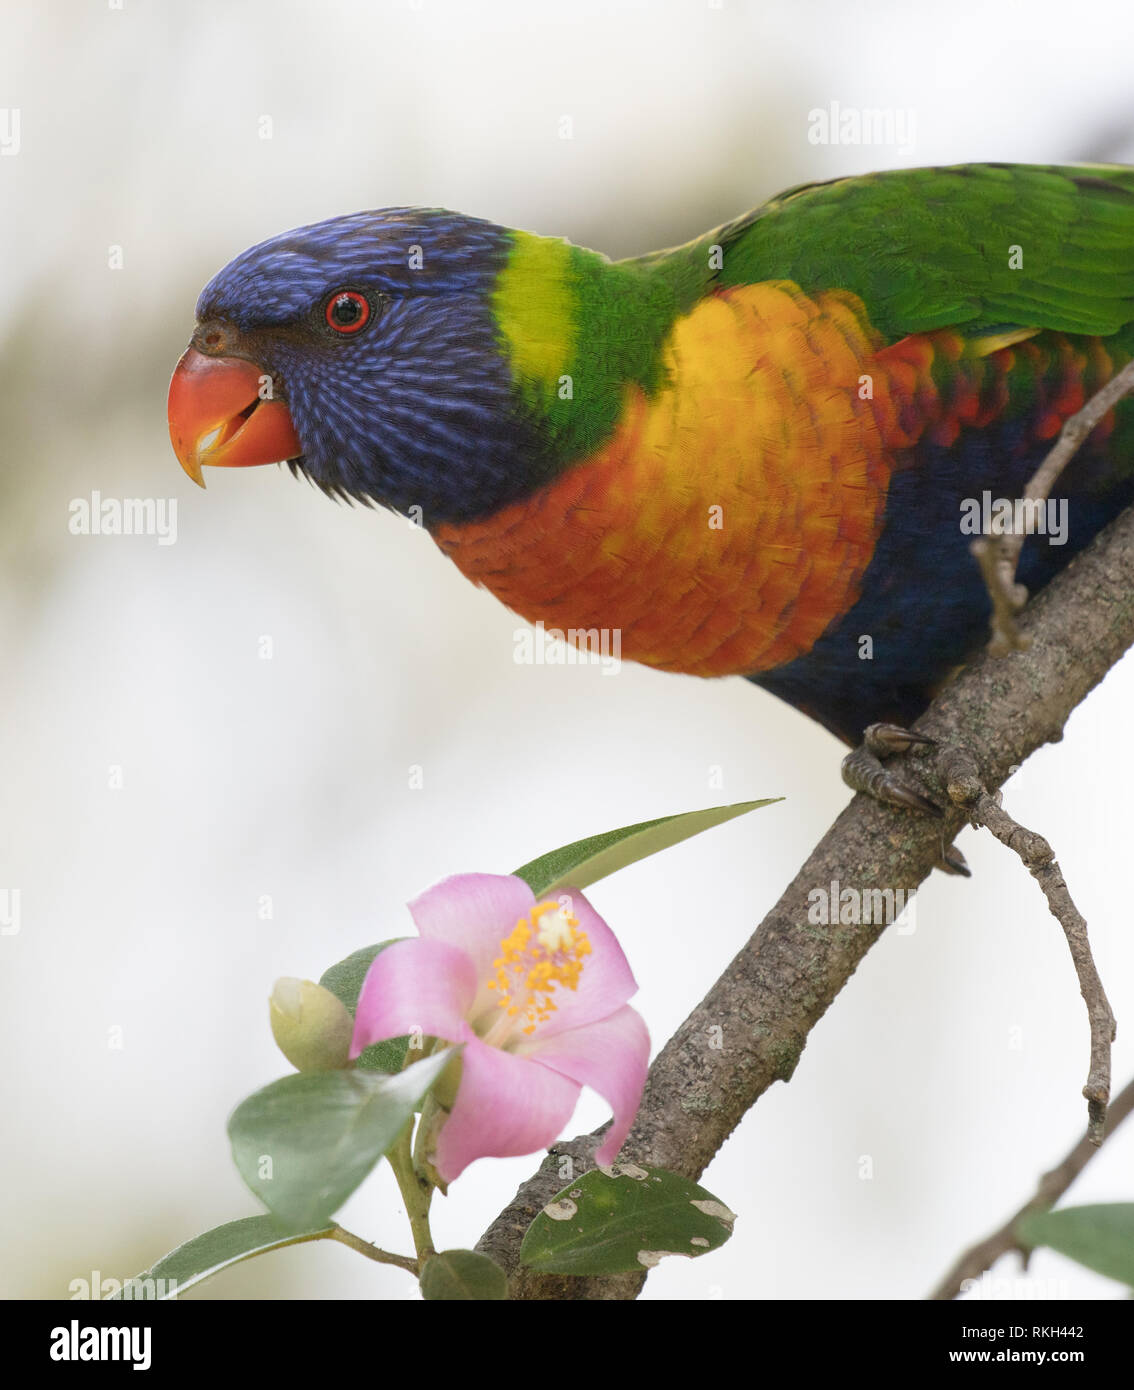 A spectacular rainbow lorikeet (Trichoglossus moluccanus) feeding on nectar and pollen from a flower at the Royal Botanic Garden, Sydney, Australia - Stock Image